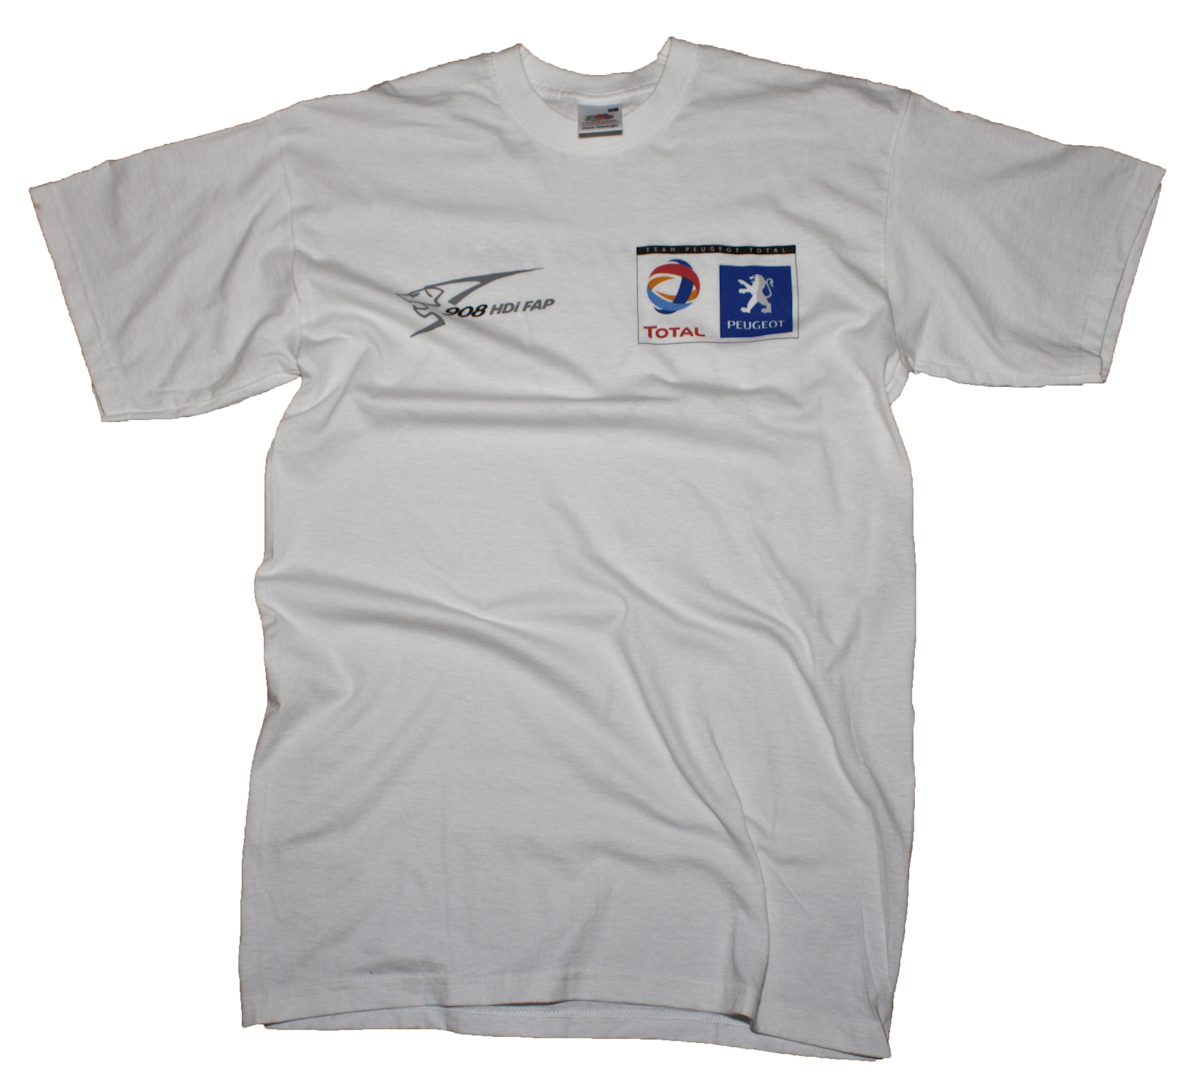 t shirt peugeot racing team sportscar 908 new ebay. Black Bedroom Furniture Sets. Home Design Ideas